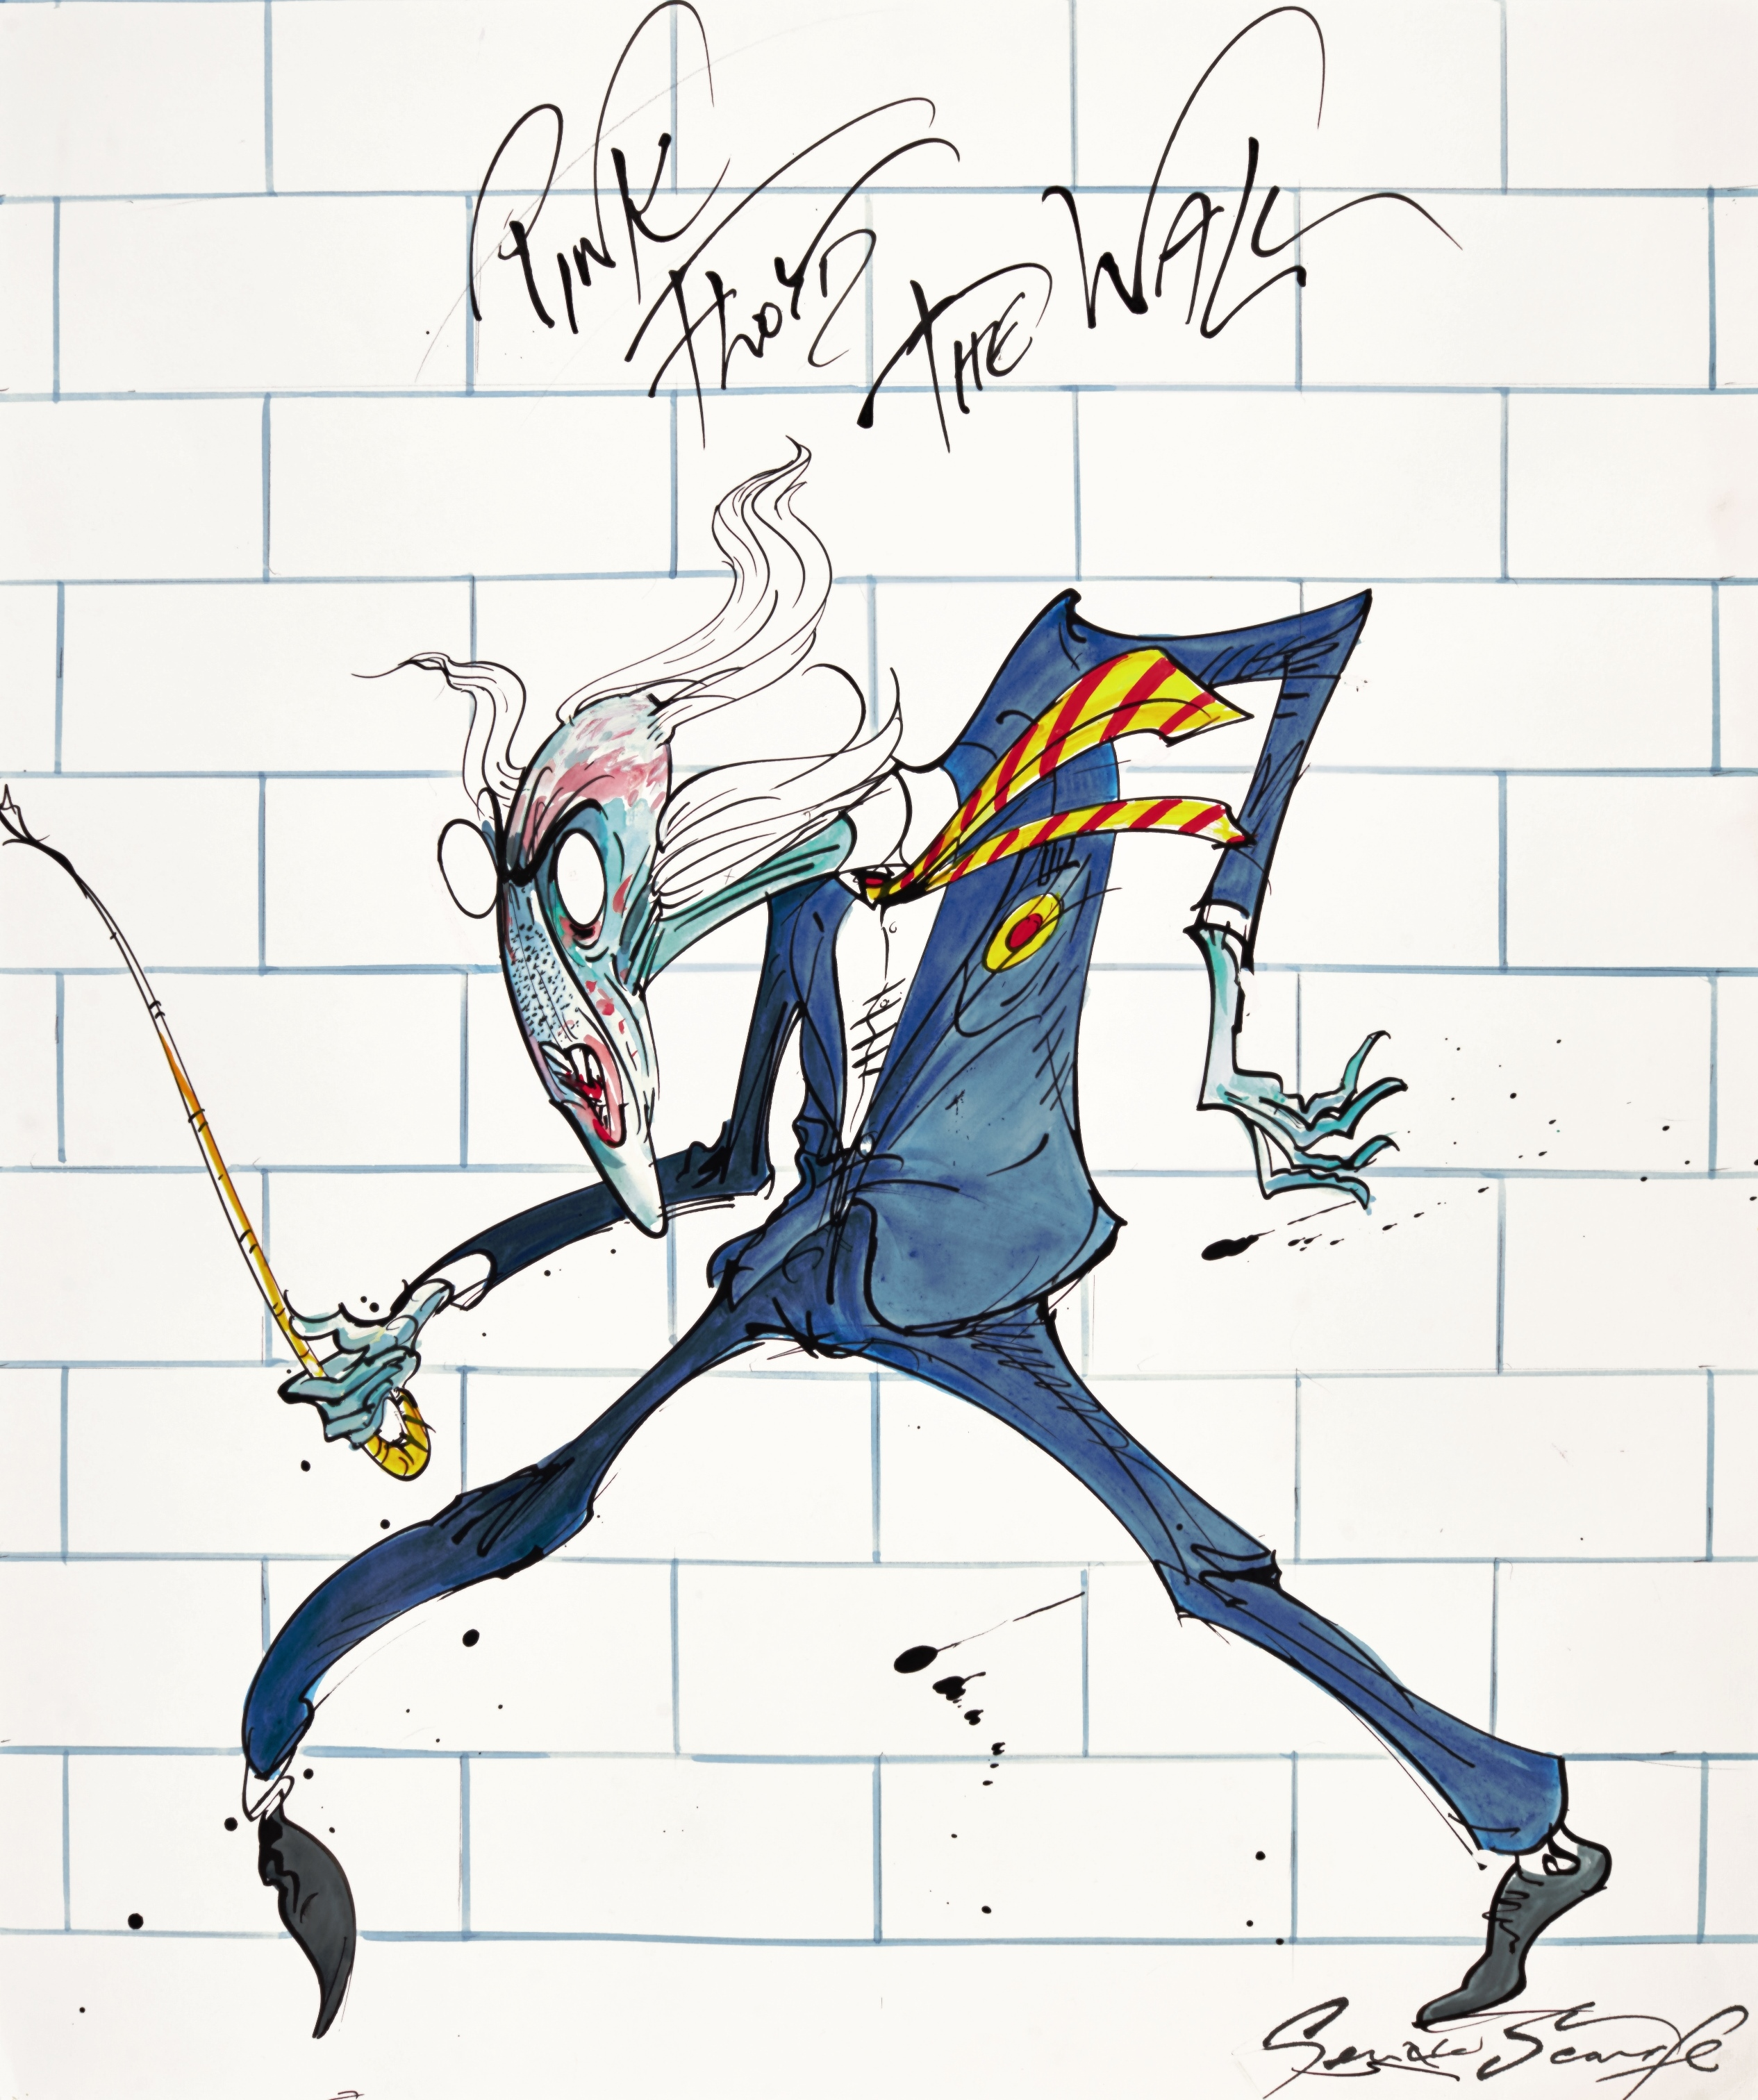 File Maggie and Rayna as well Old Bag Margaret Thatcher Drawing Among Leading Lots At Sotheby S Auction Of Gerald Scarfe Political Cartoons in addition Cereal Killer Cafe furthermore 305822630916005252 furthermore Music Video 90s ERuaUFbc0M9DG. on old cartoons from the 90s